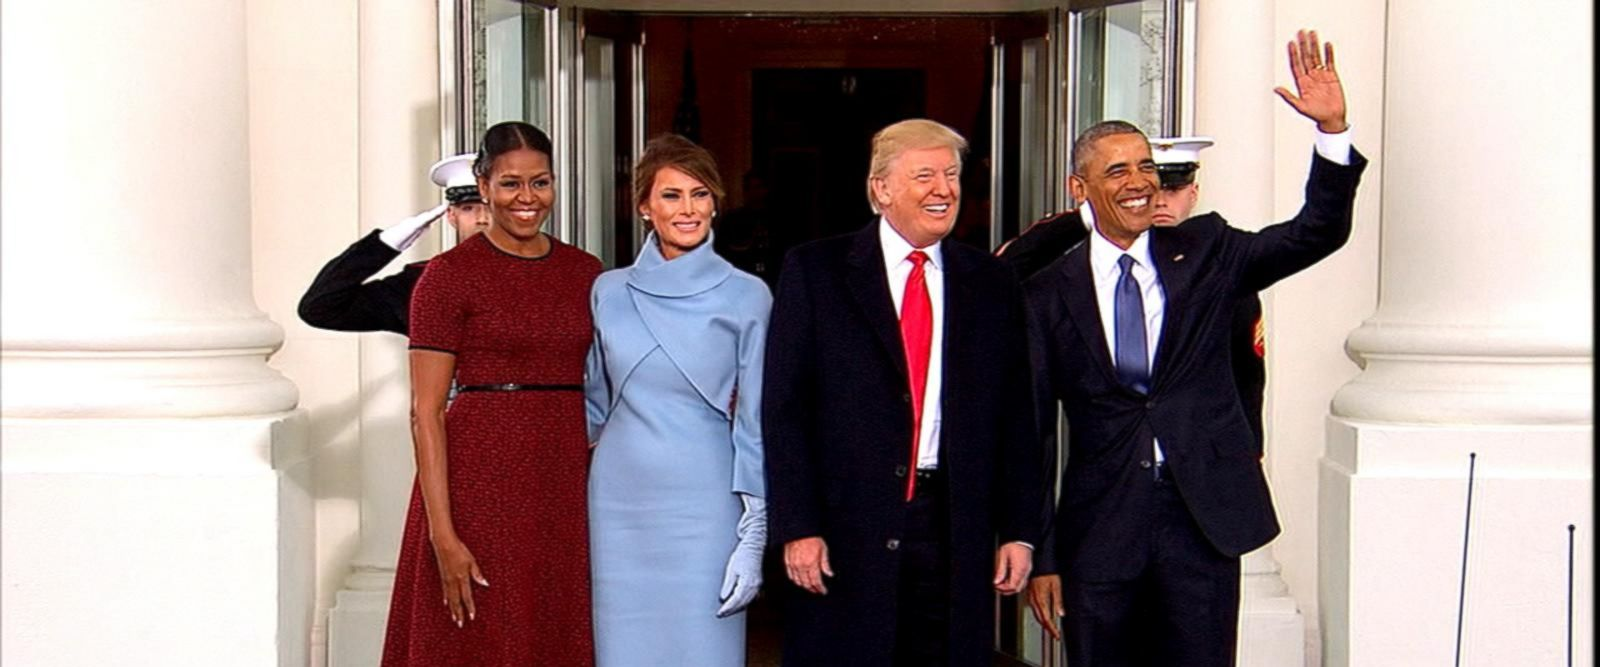 VIDEO: President Trump and the Private Moments With President Obama